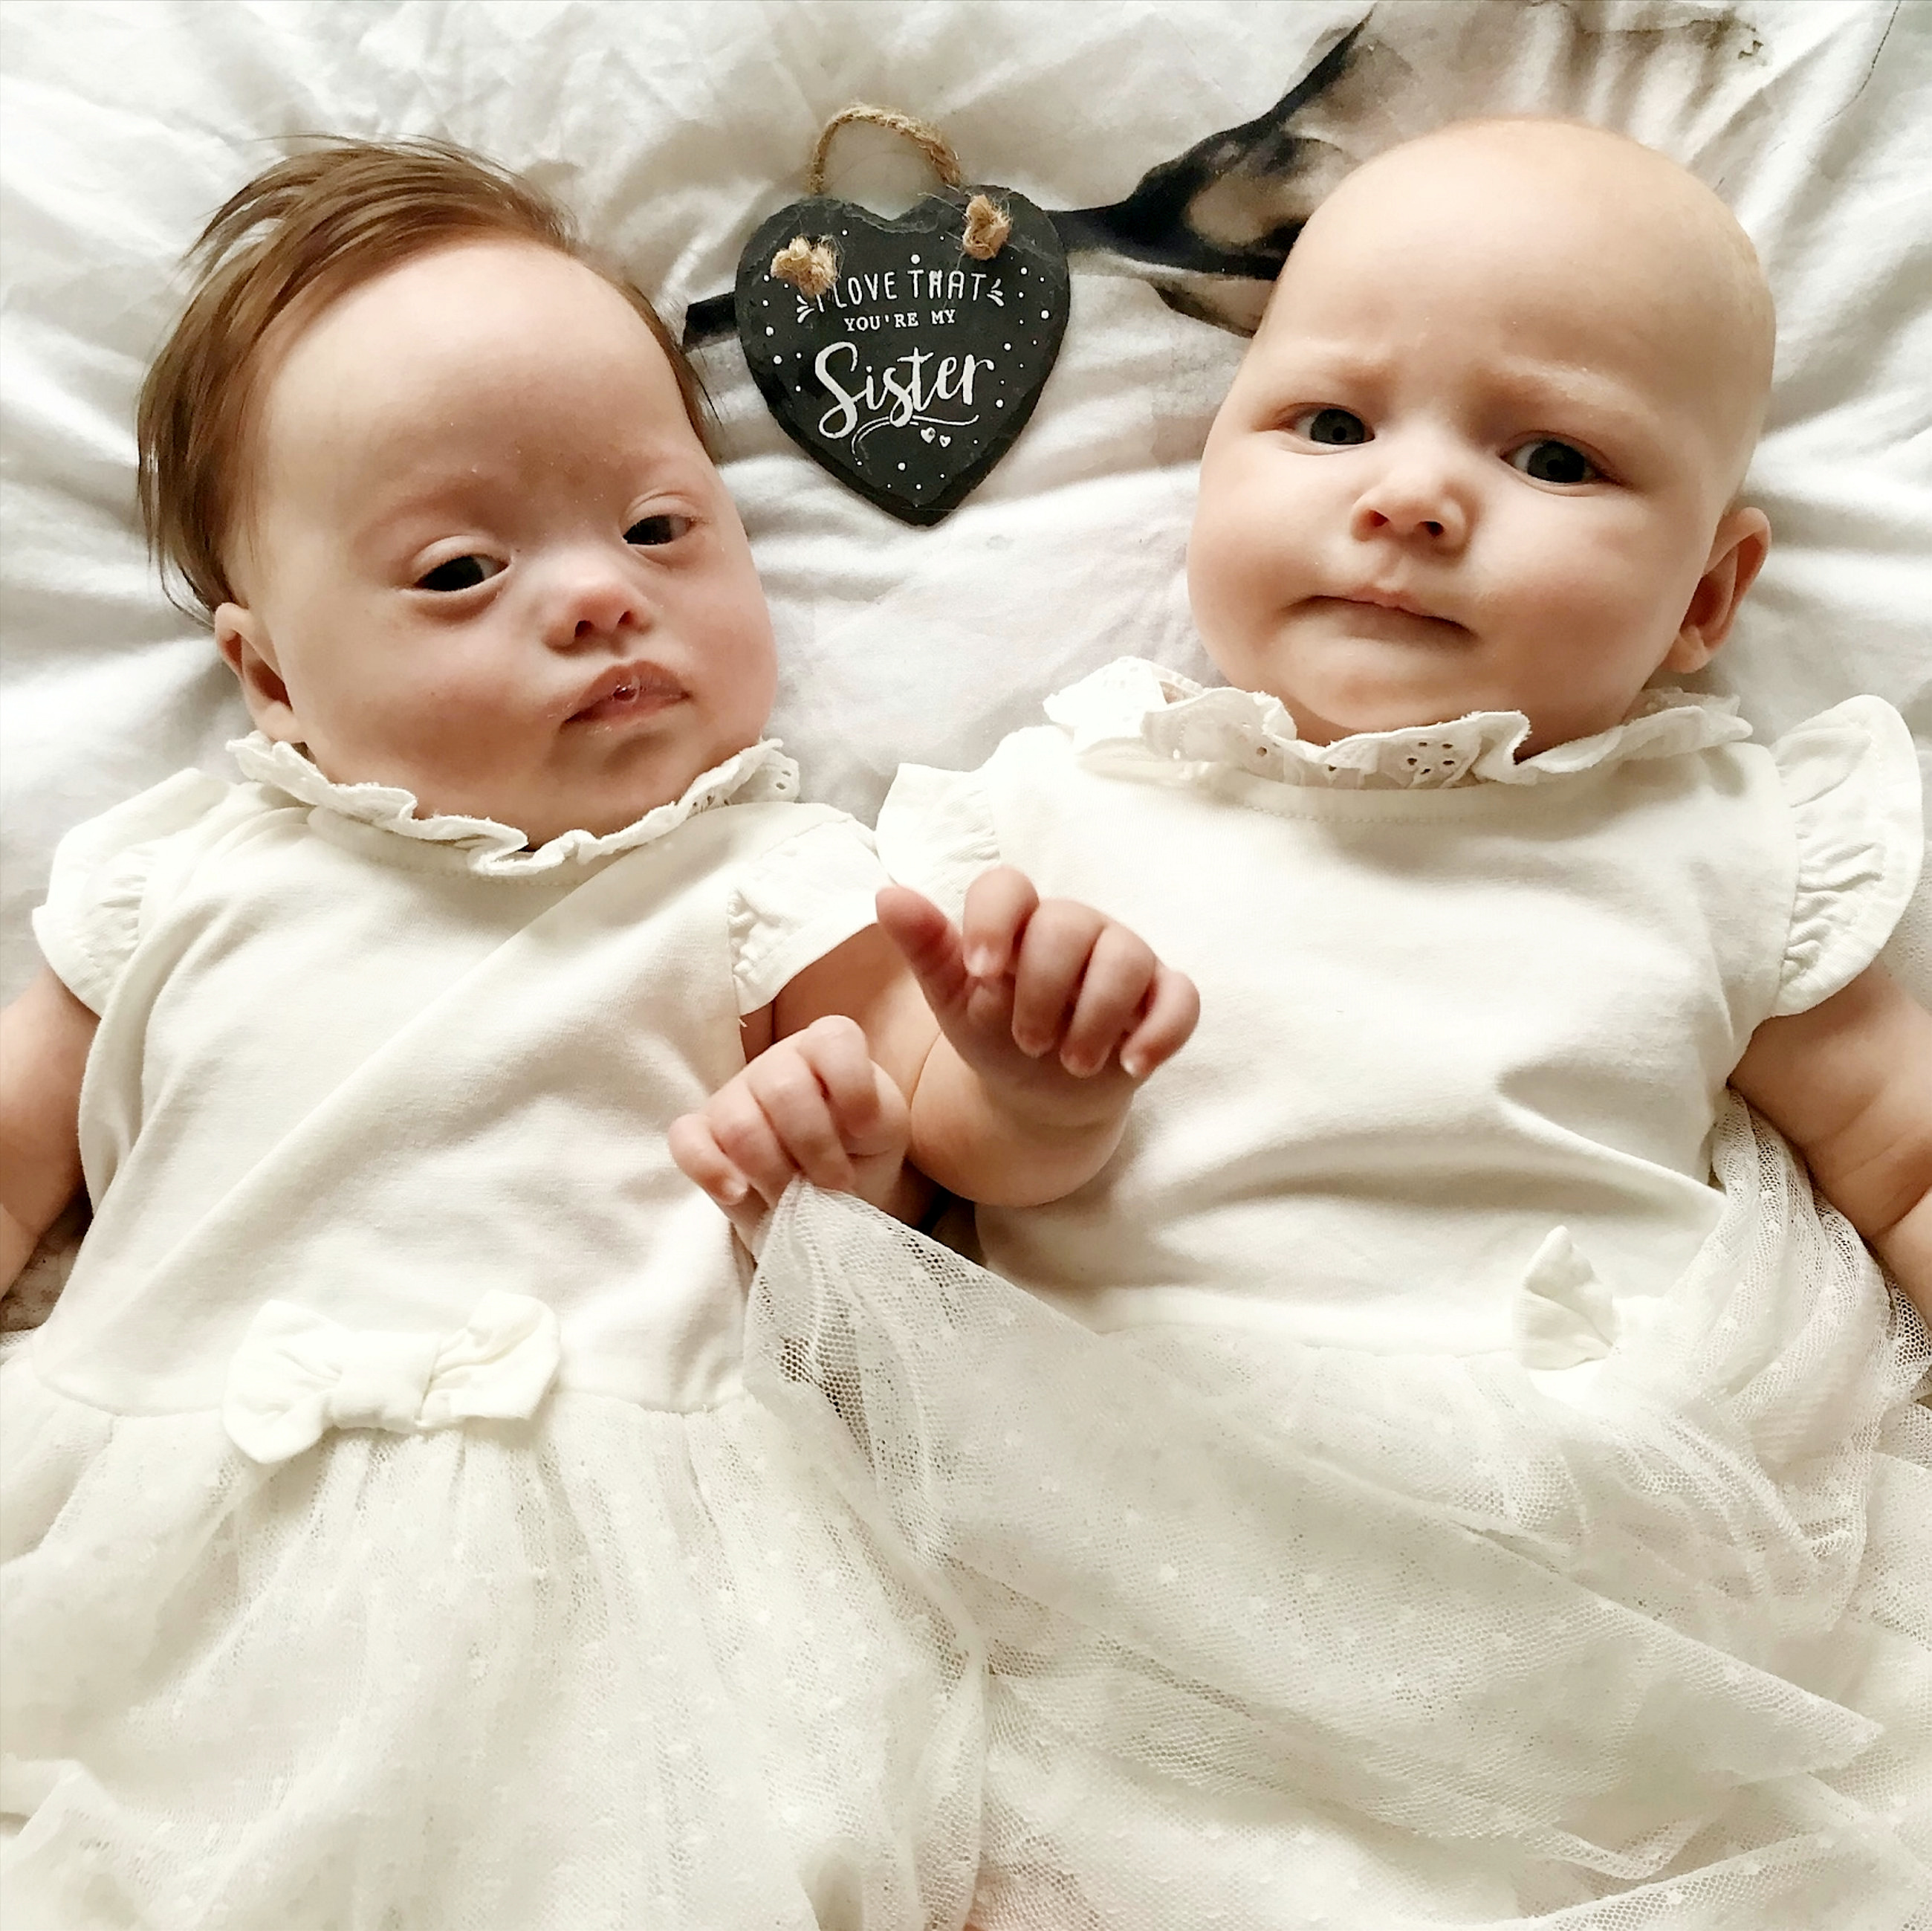 Twins Harper (left) and Quinn Bailey